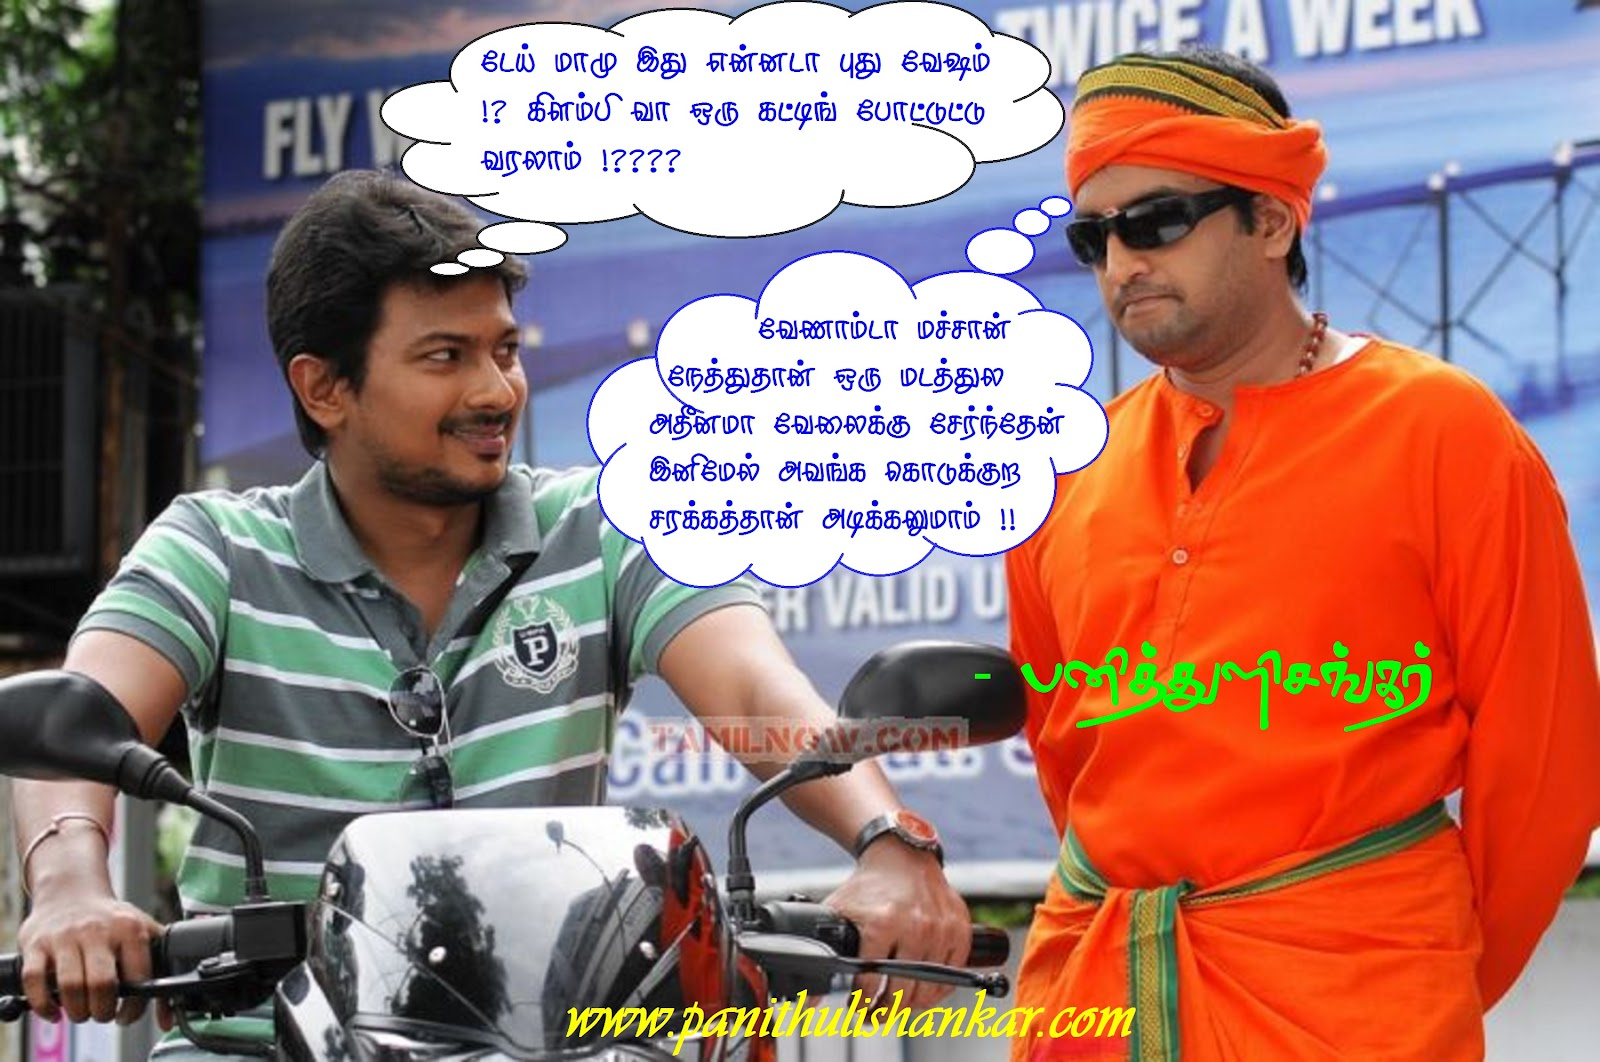 Funny Santhanam Pictures Pics Quotes Jokes Tamil Comedy Jpg